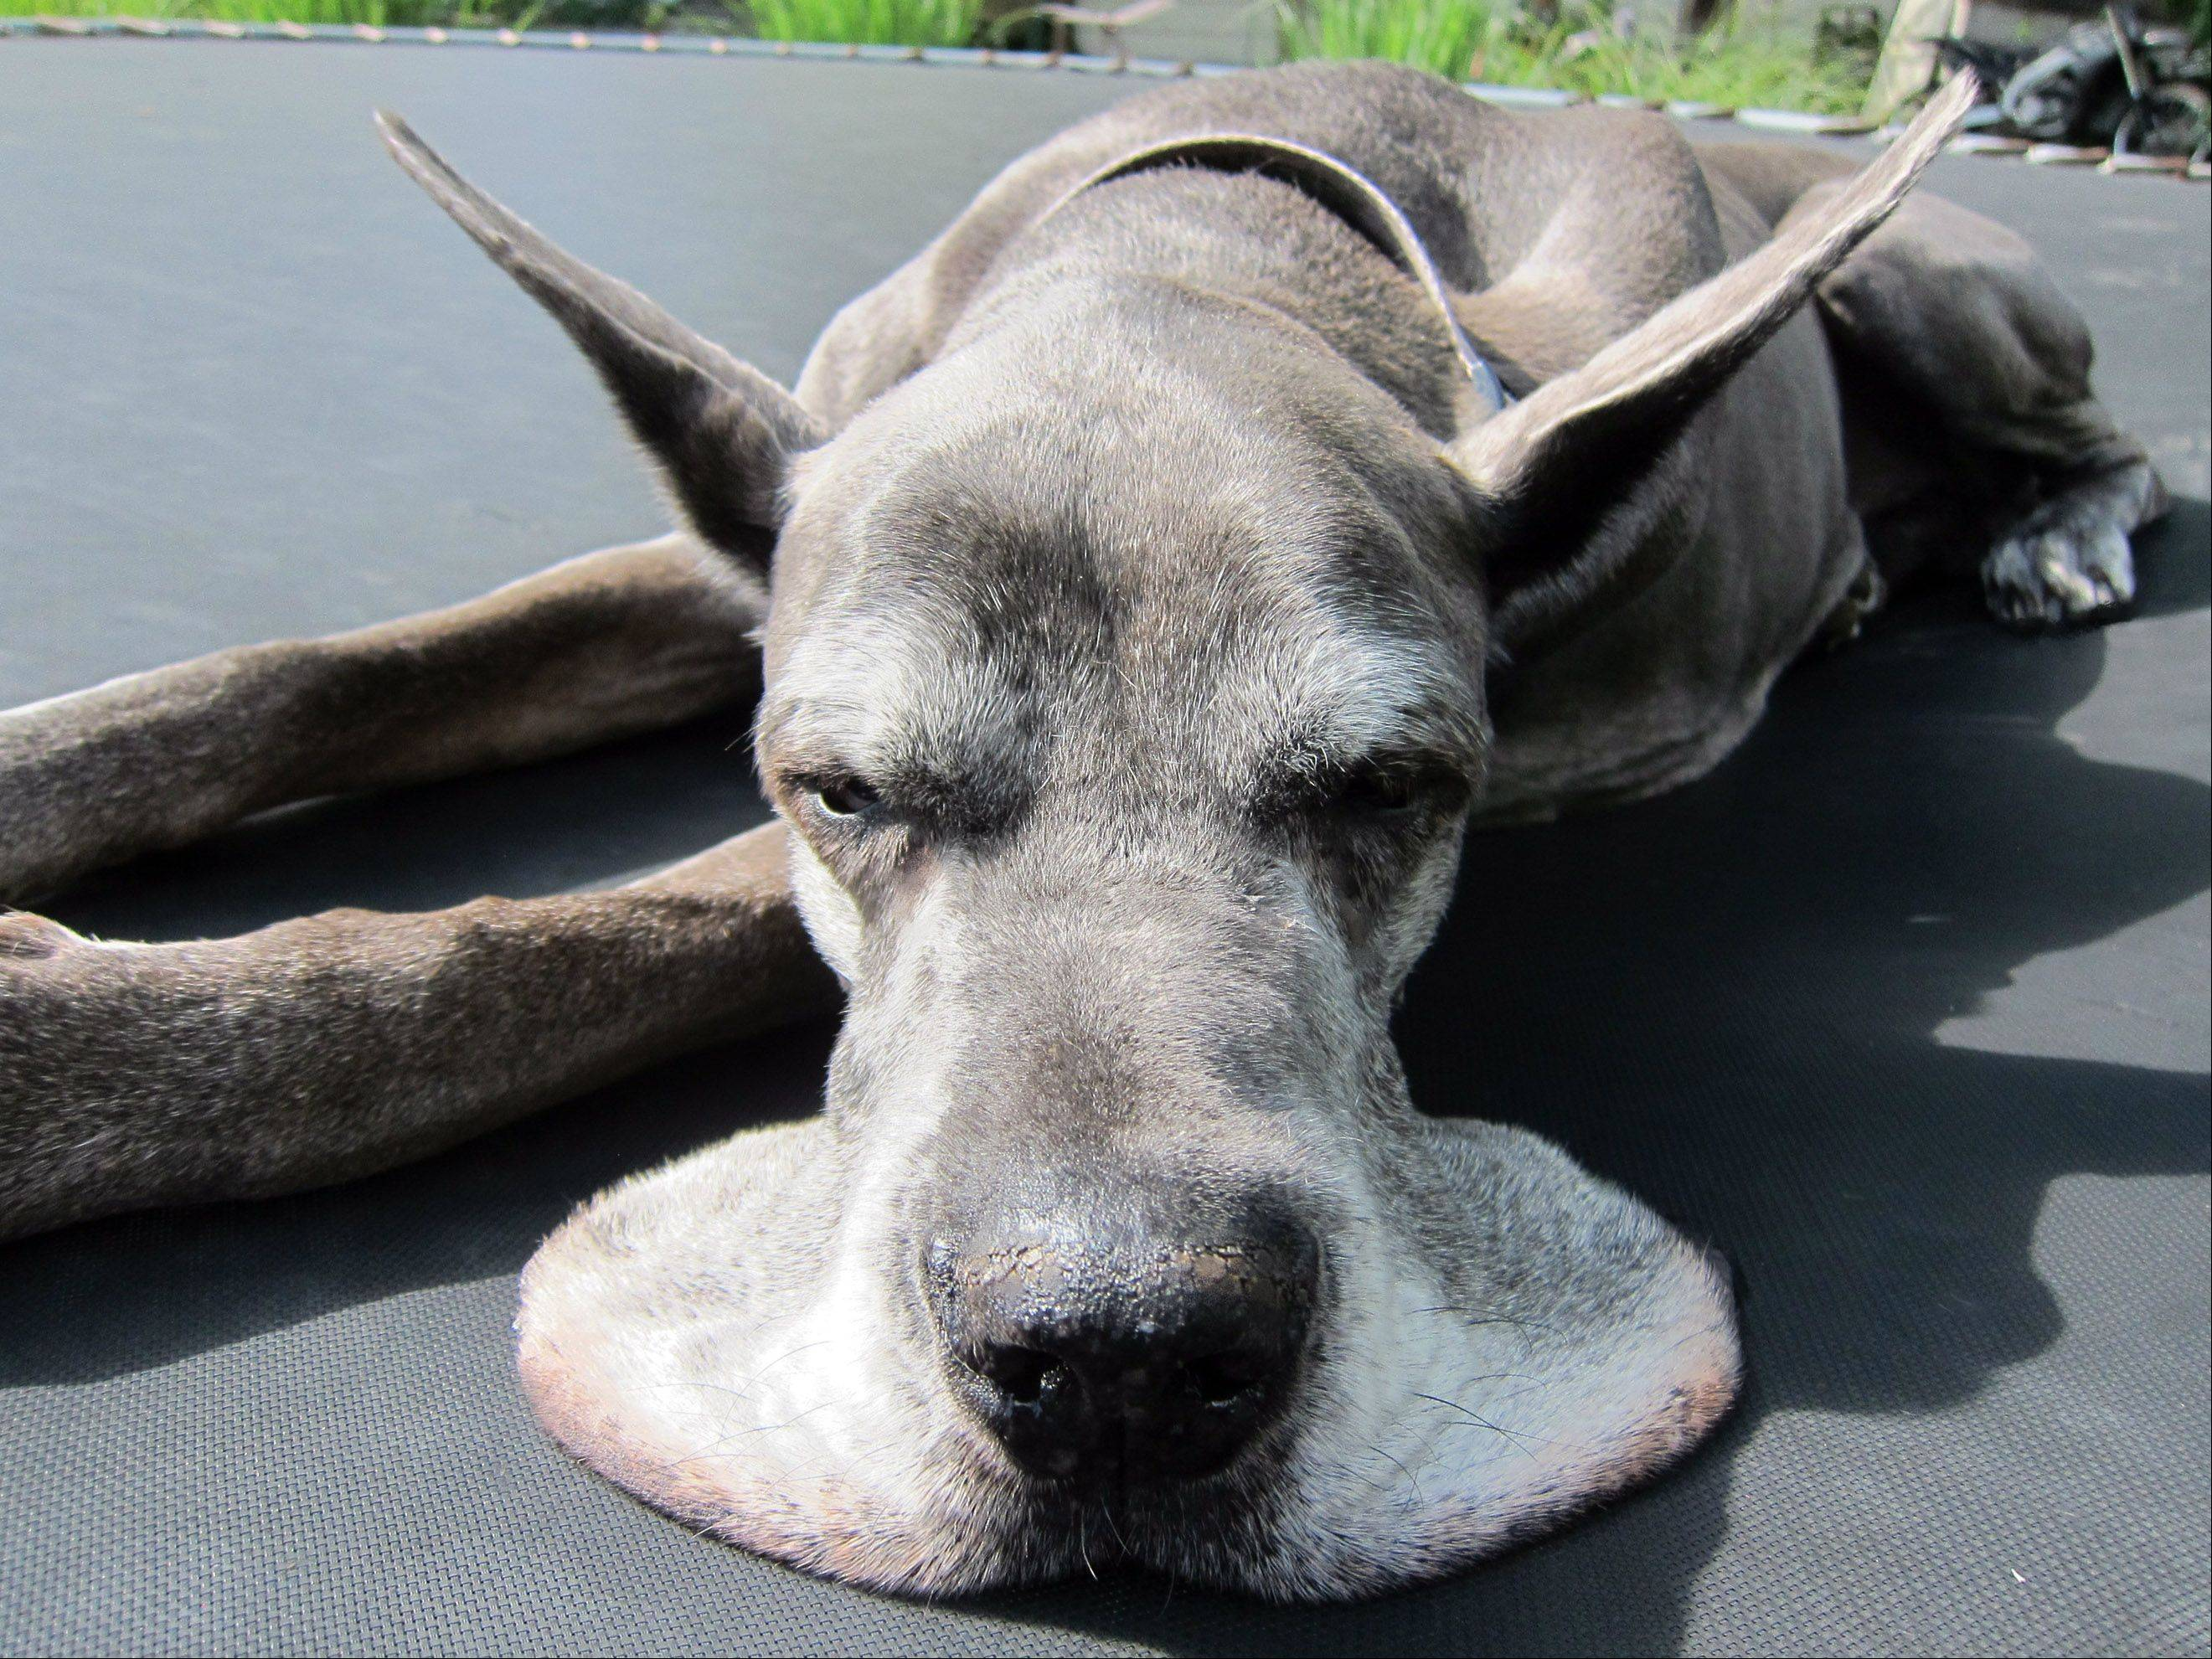 Taken this week in the 100 degree heat, our Great Dane, Contessa, suns herself on the hot, black trampoline in the backyard. However, her underbelly and lips enjoy the draft from below! This is how she spends her mornings when we let her out.